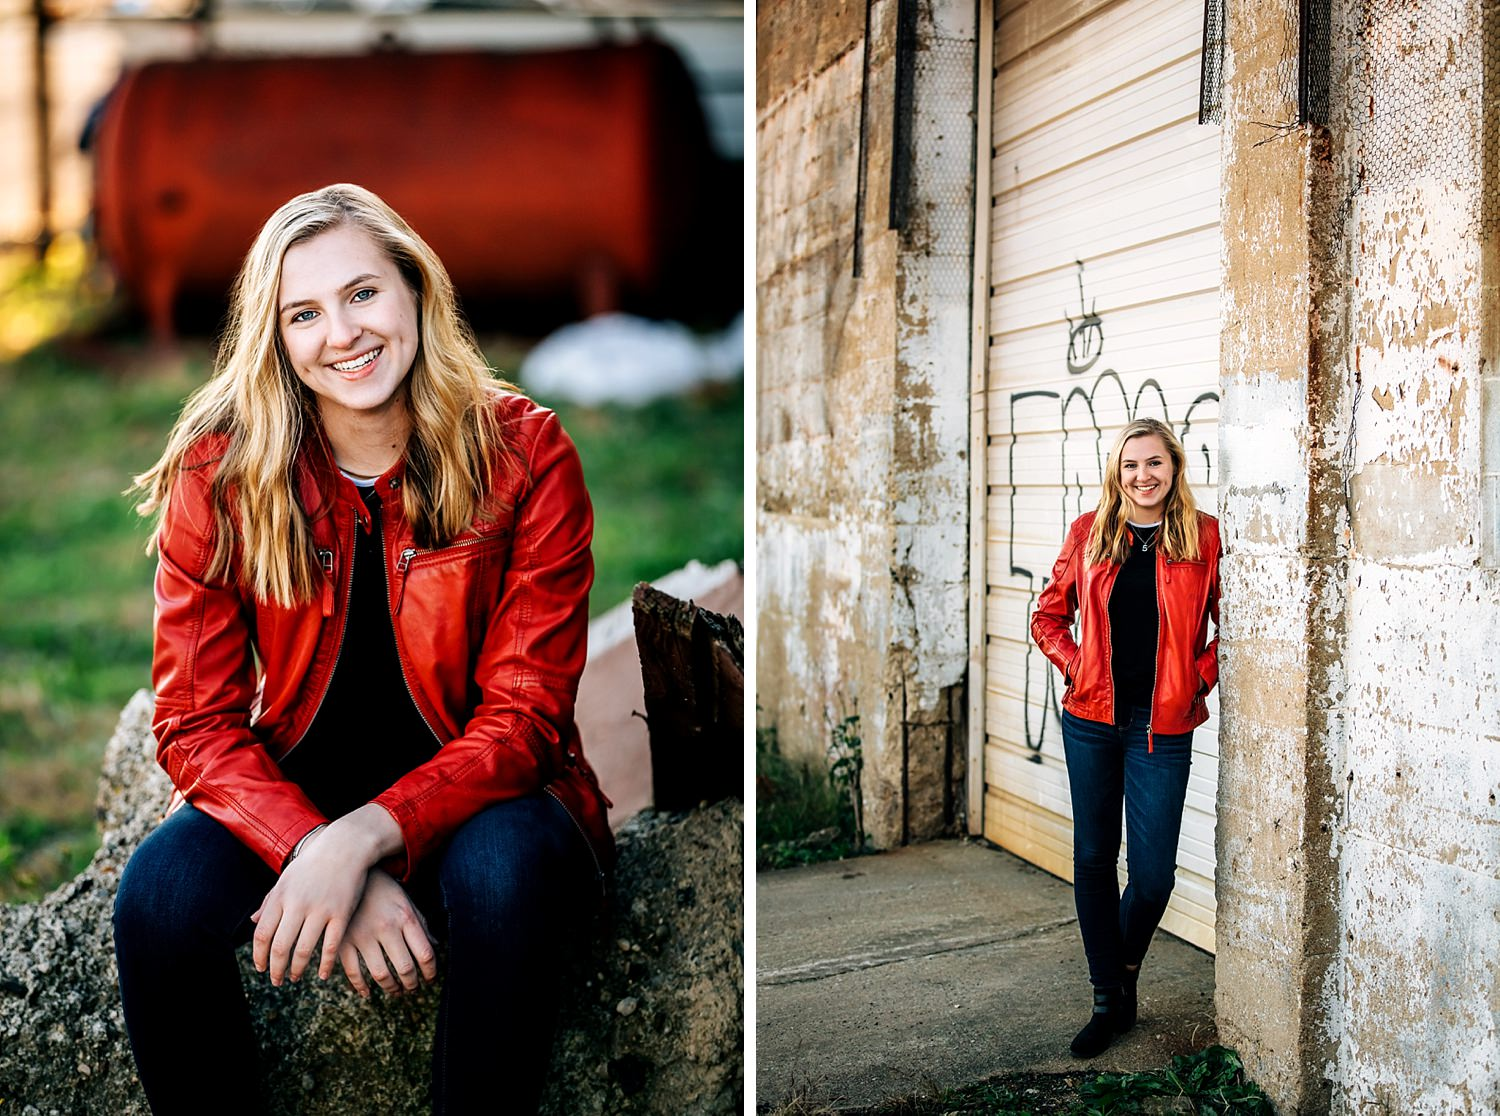 senior portraits in urban city leaning against wall wearing red jacket in newark ohio